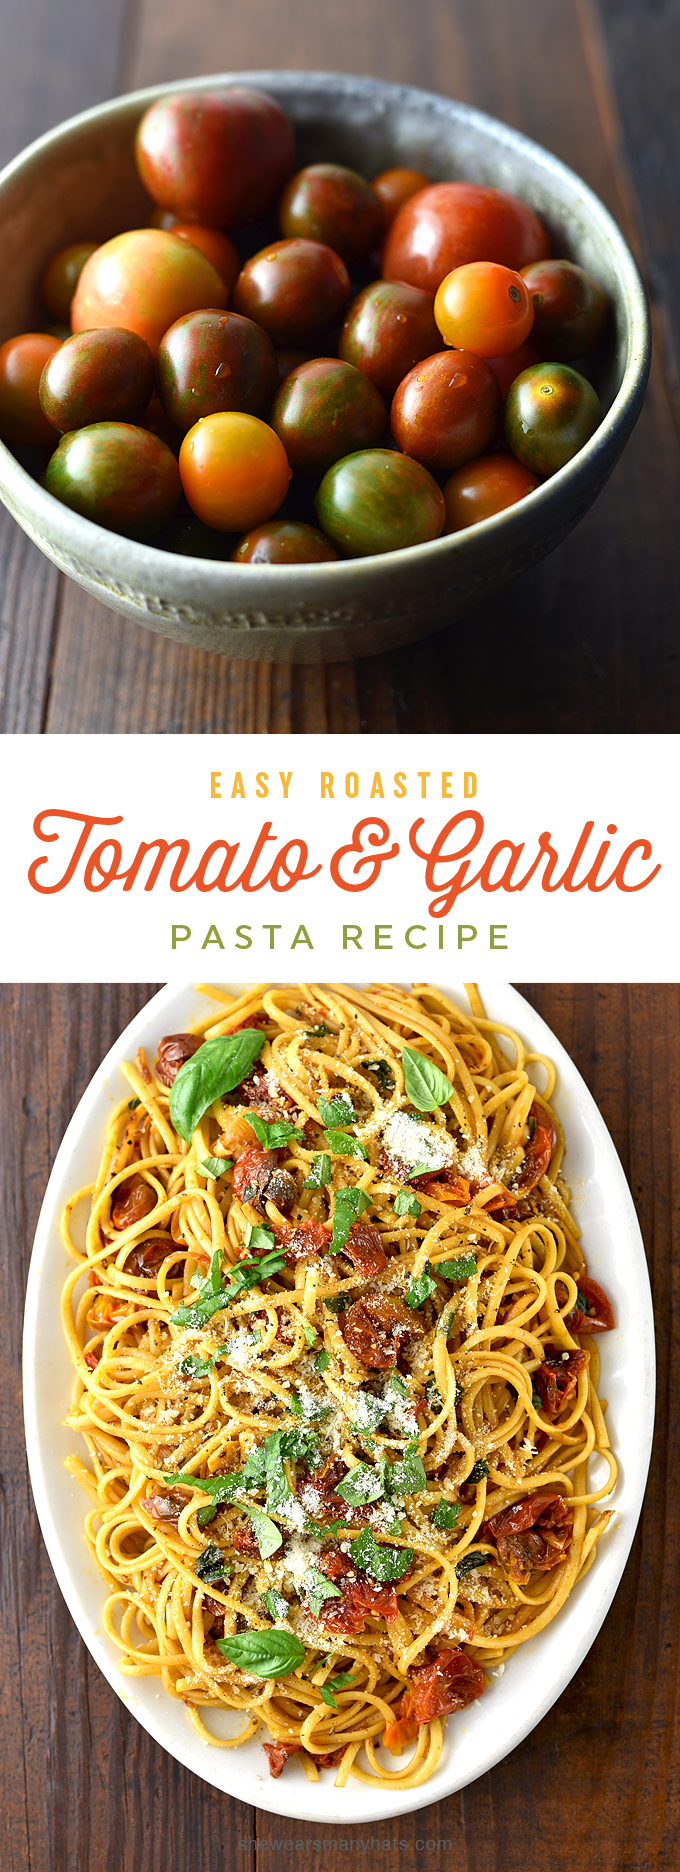 Easy Roasted Tomato Garlic Pasta Recipe | shewearsmanyhats.com